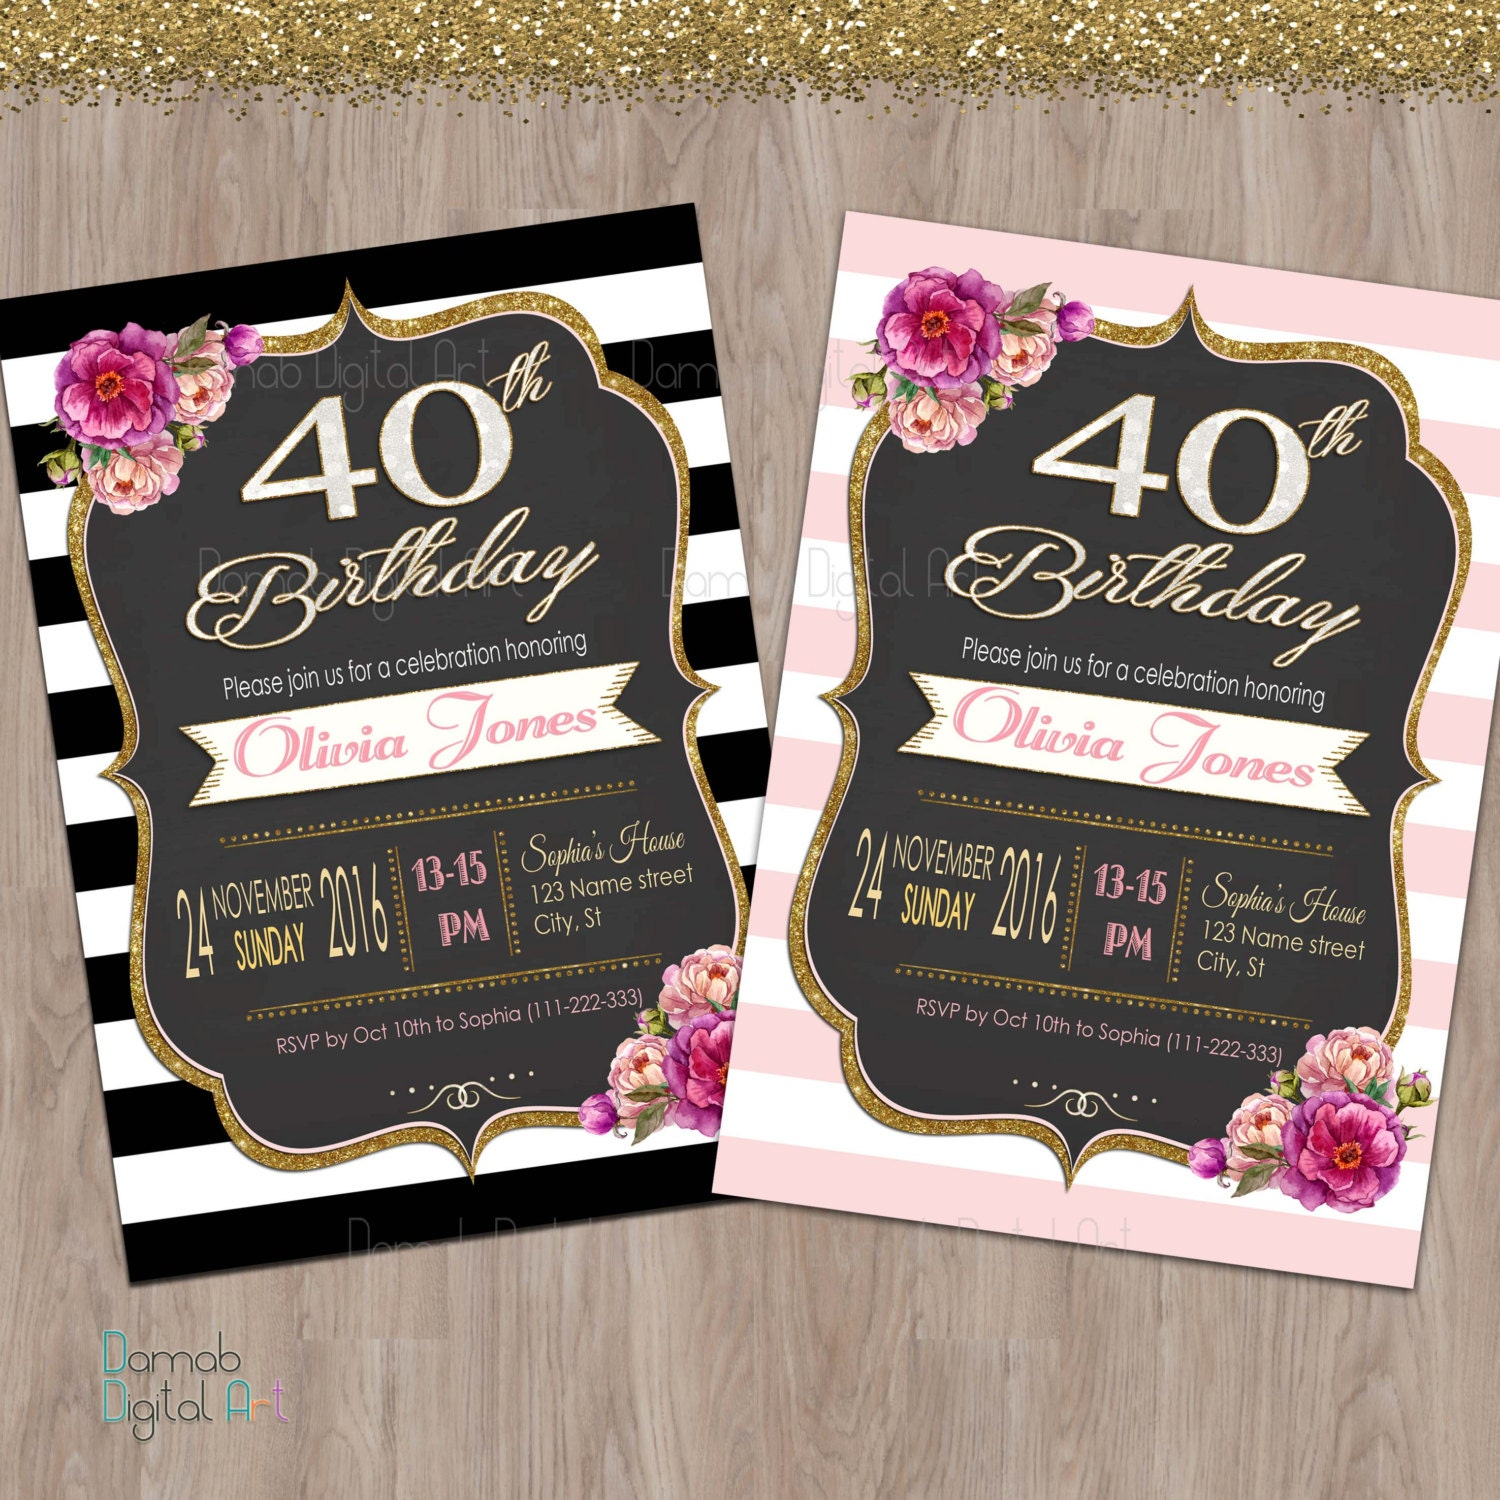 birthday invitation design online free - Picture Ideas References